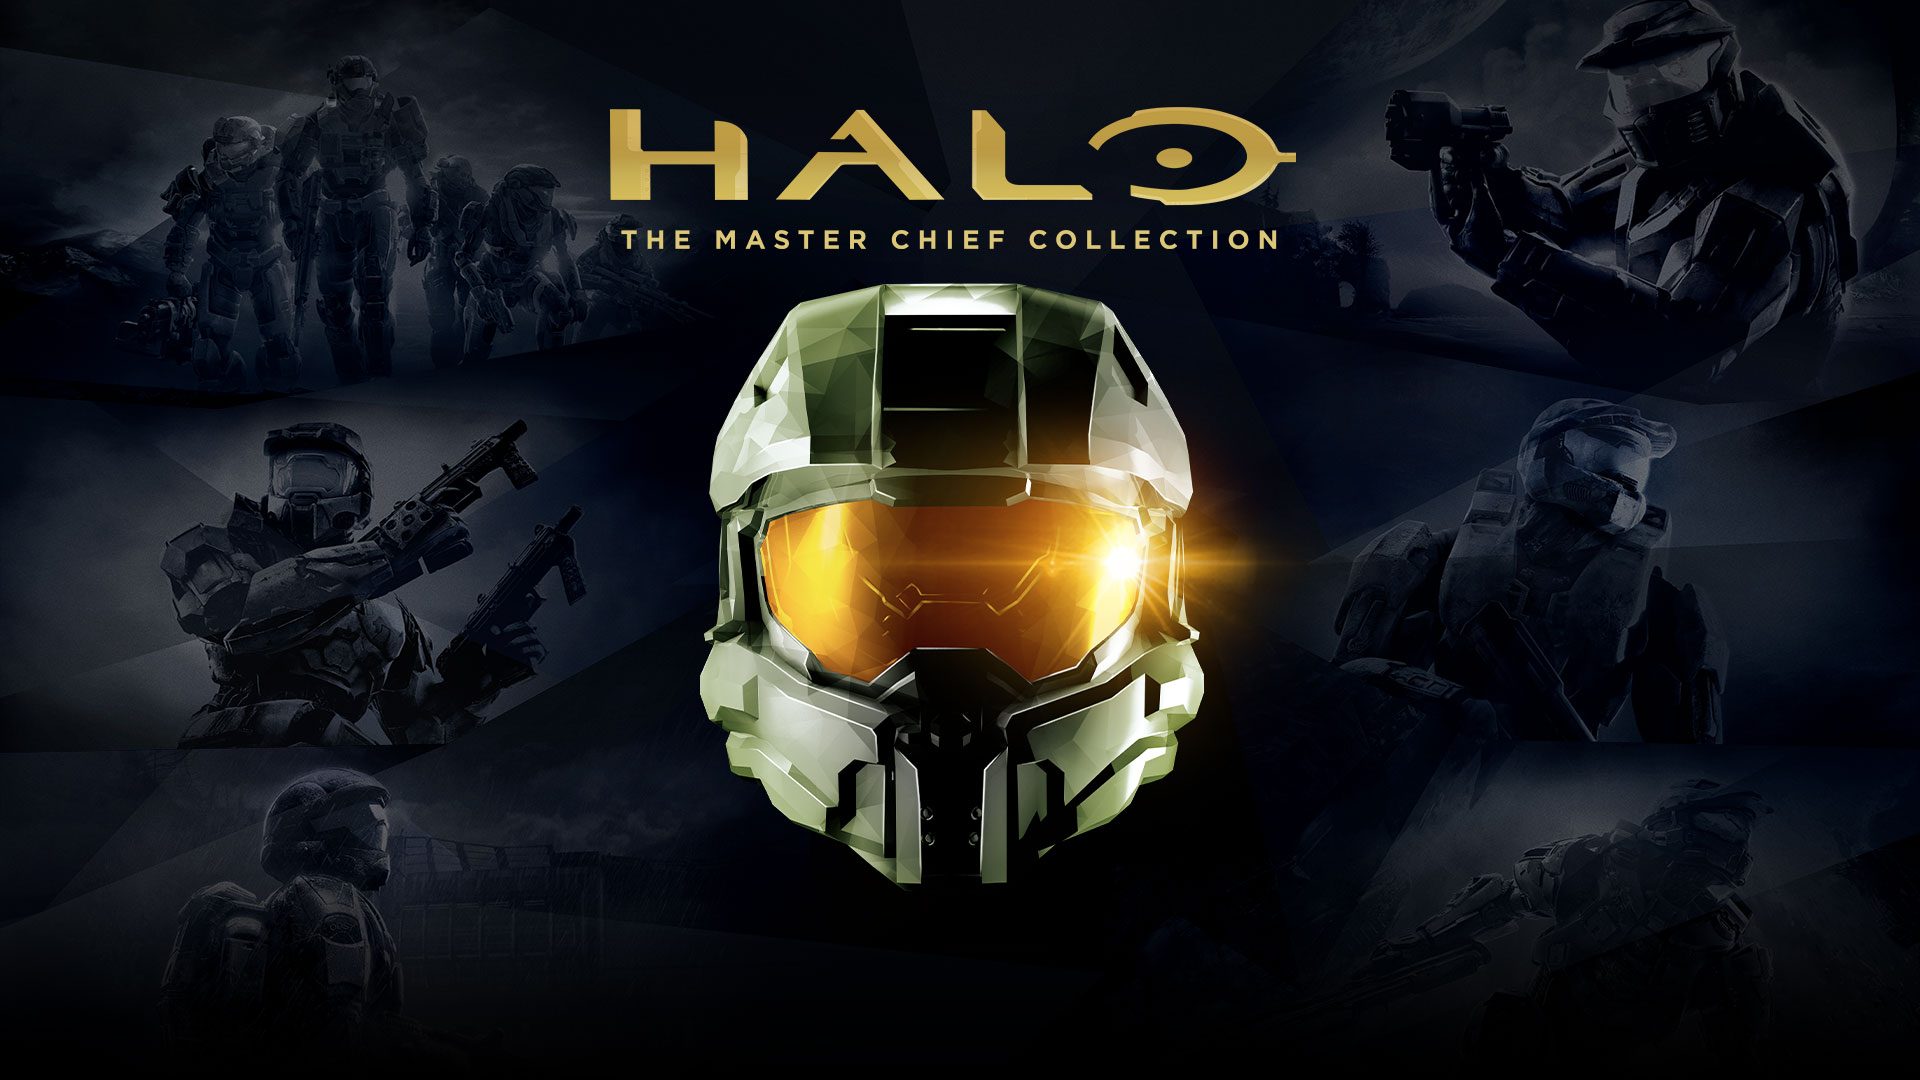 Halo: The Master Chief Collection,Master Chief 頭盔與背景中先前 Halo 遊戲圖案的正面圖